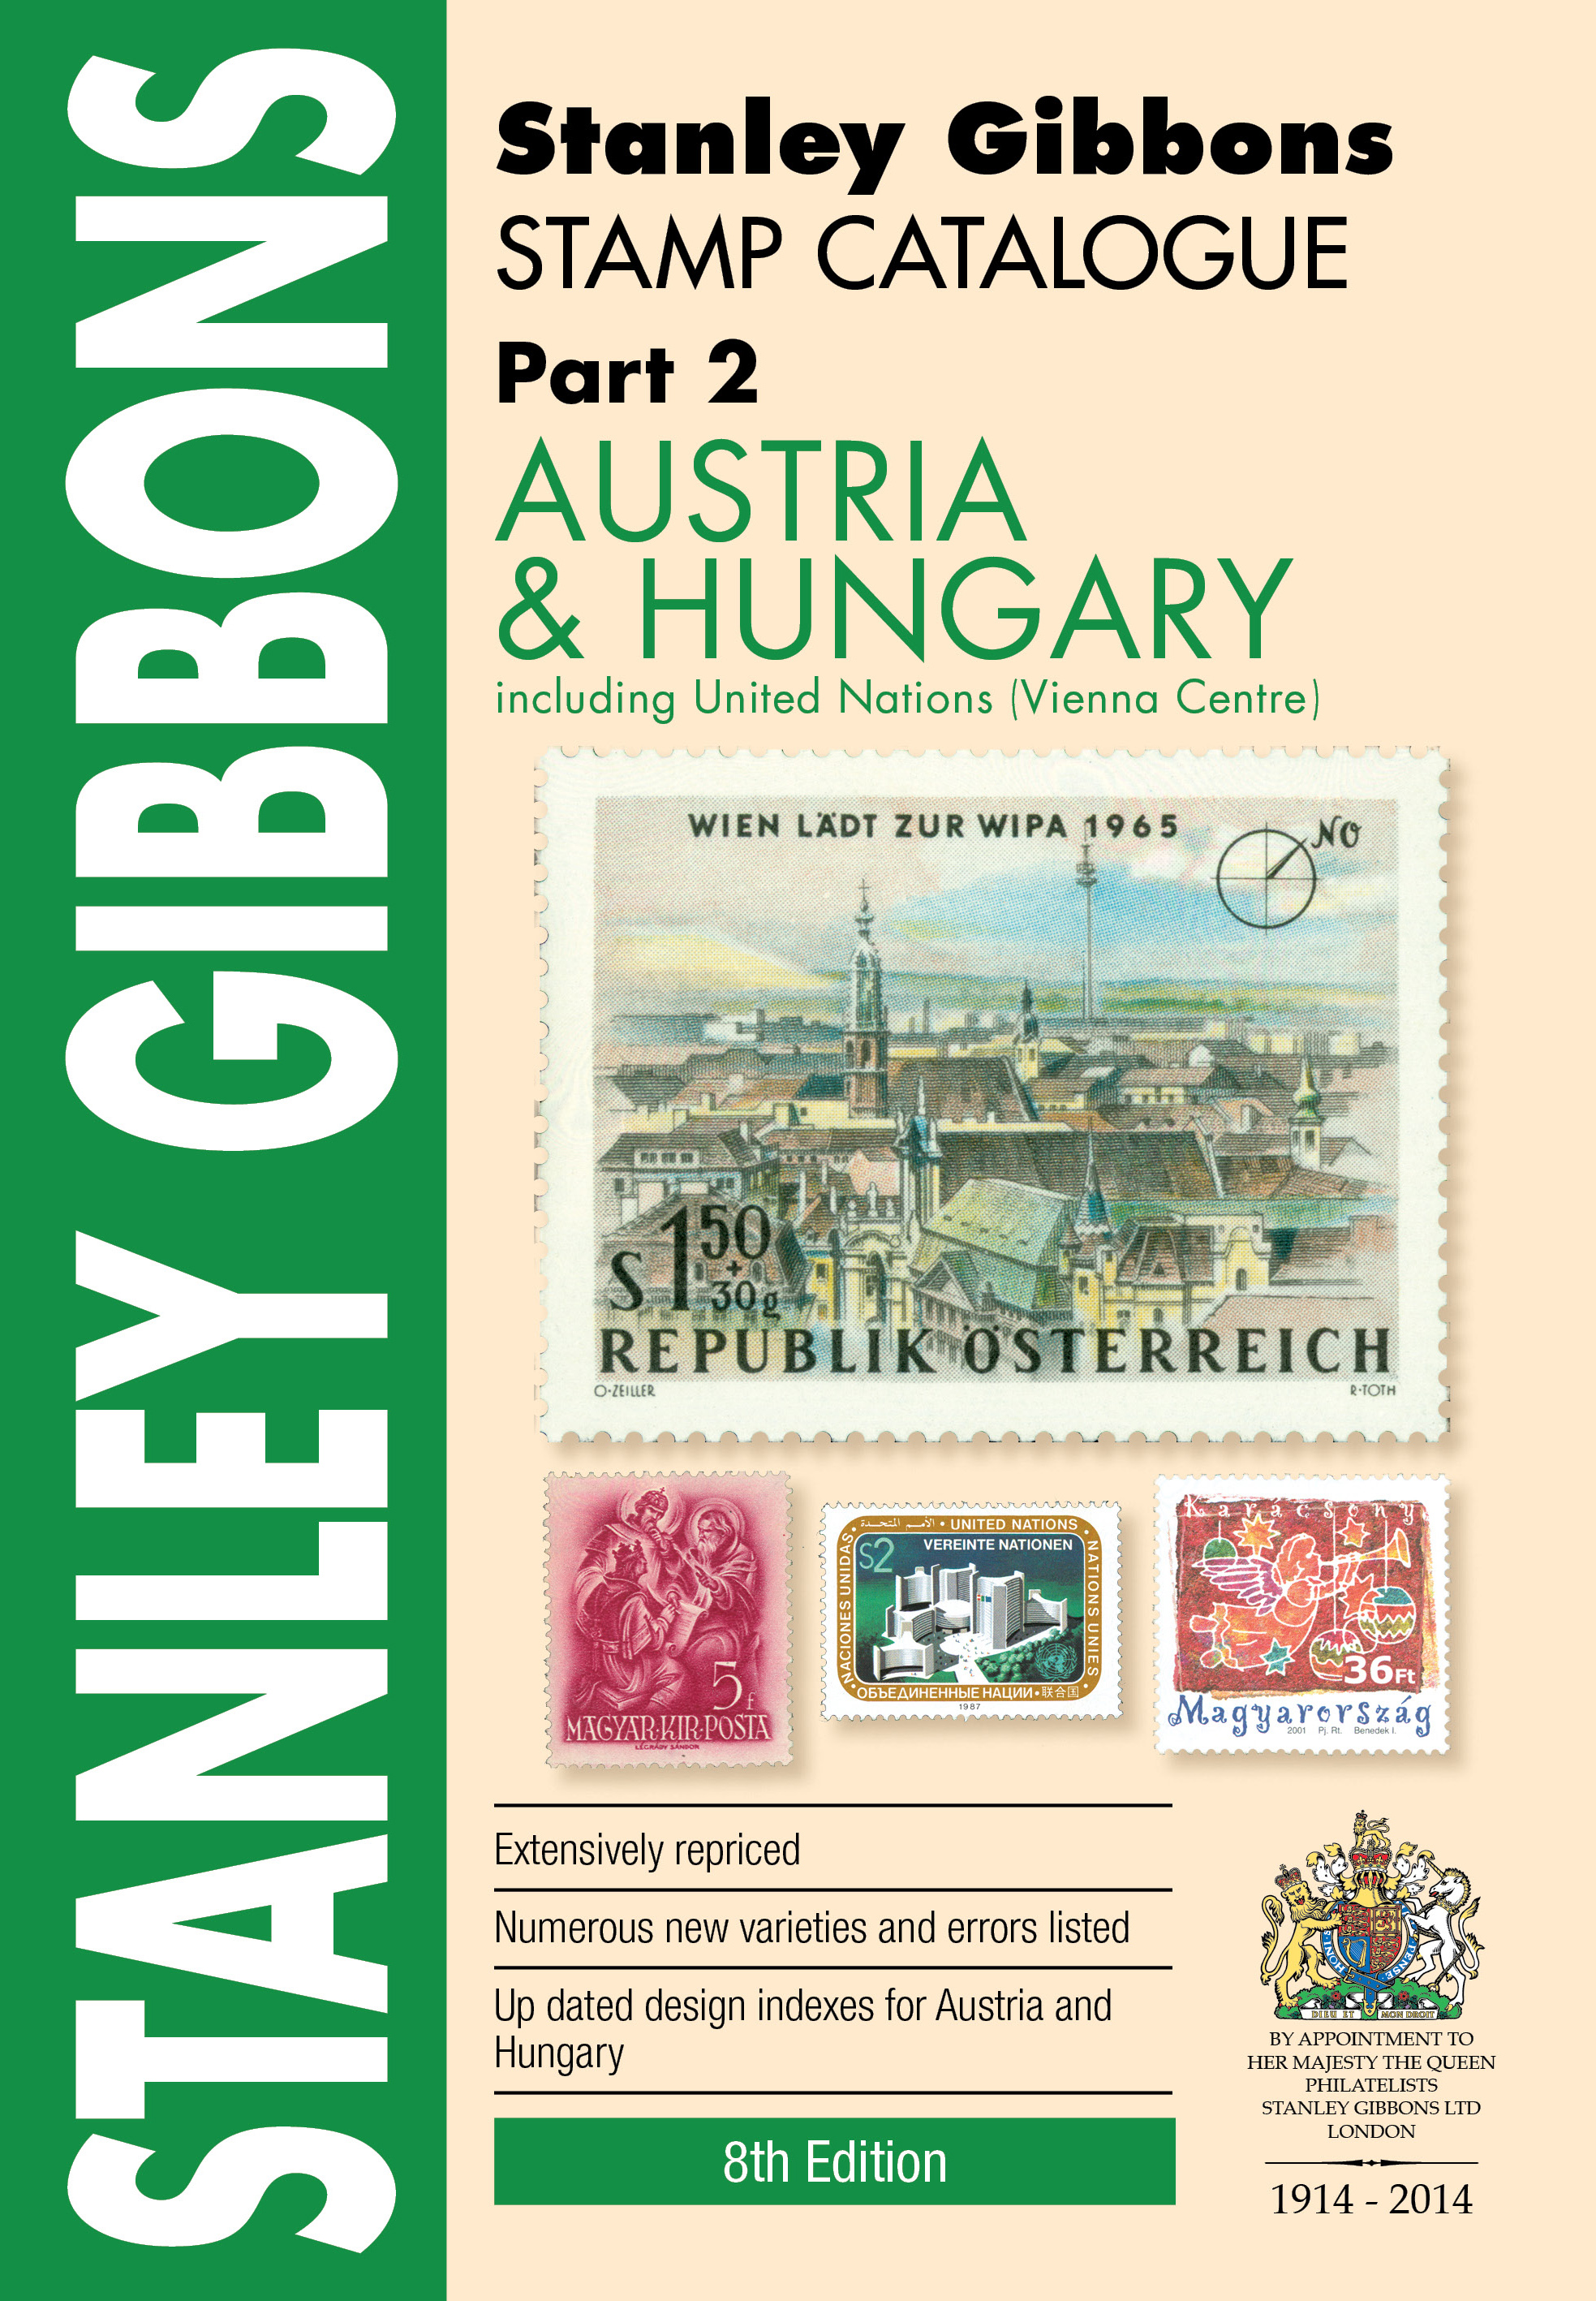 Austria & Hungary Stamp Catalogue 8th Edition